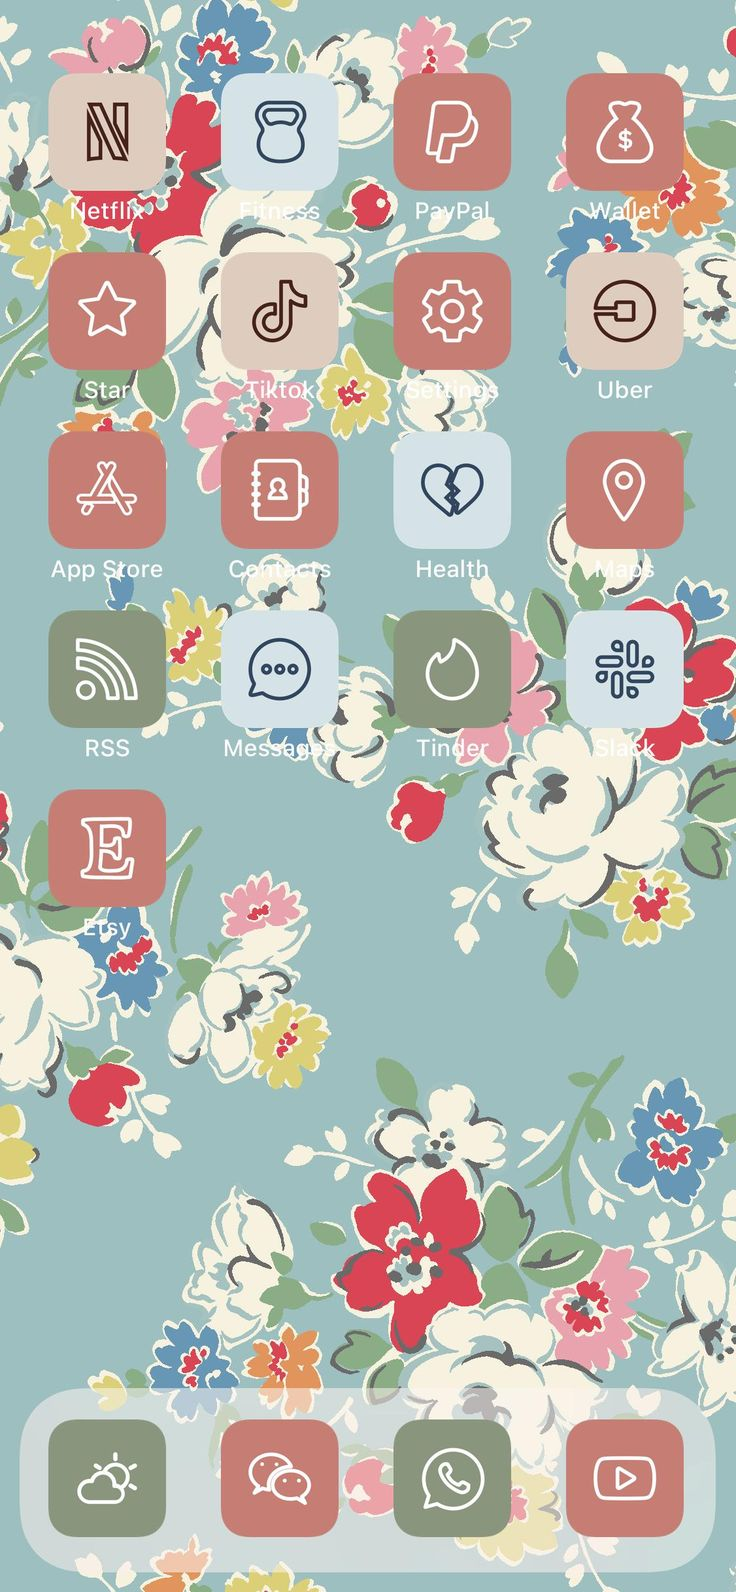 And learn more about aesthetic: 2 000+ Boho Aesthetic iOS 14 App Icons Pack | Natural ...